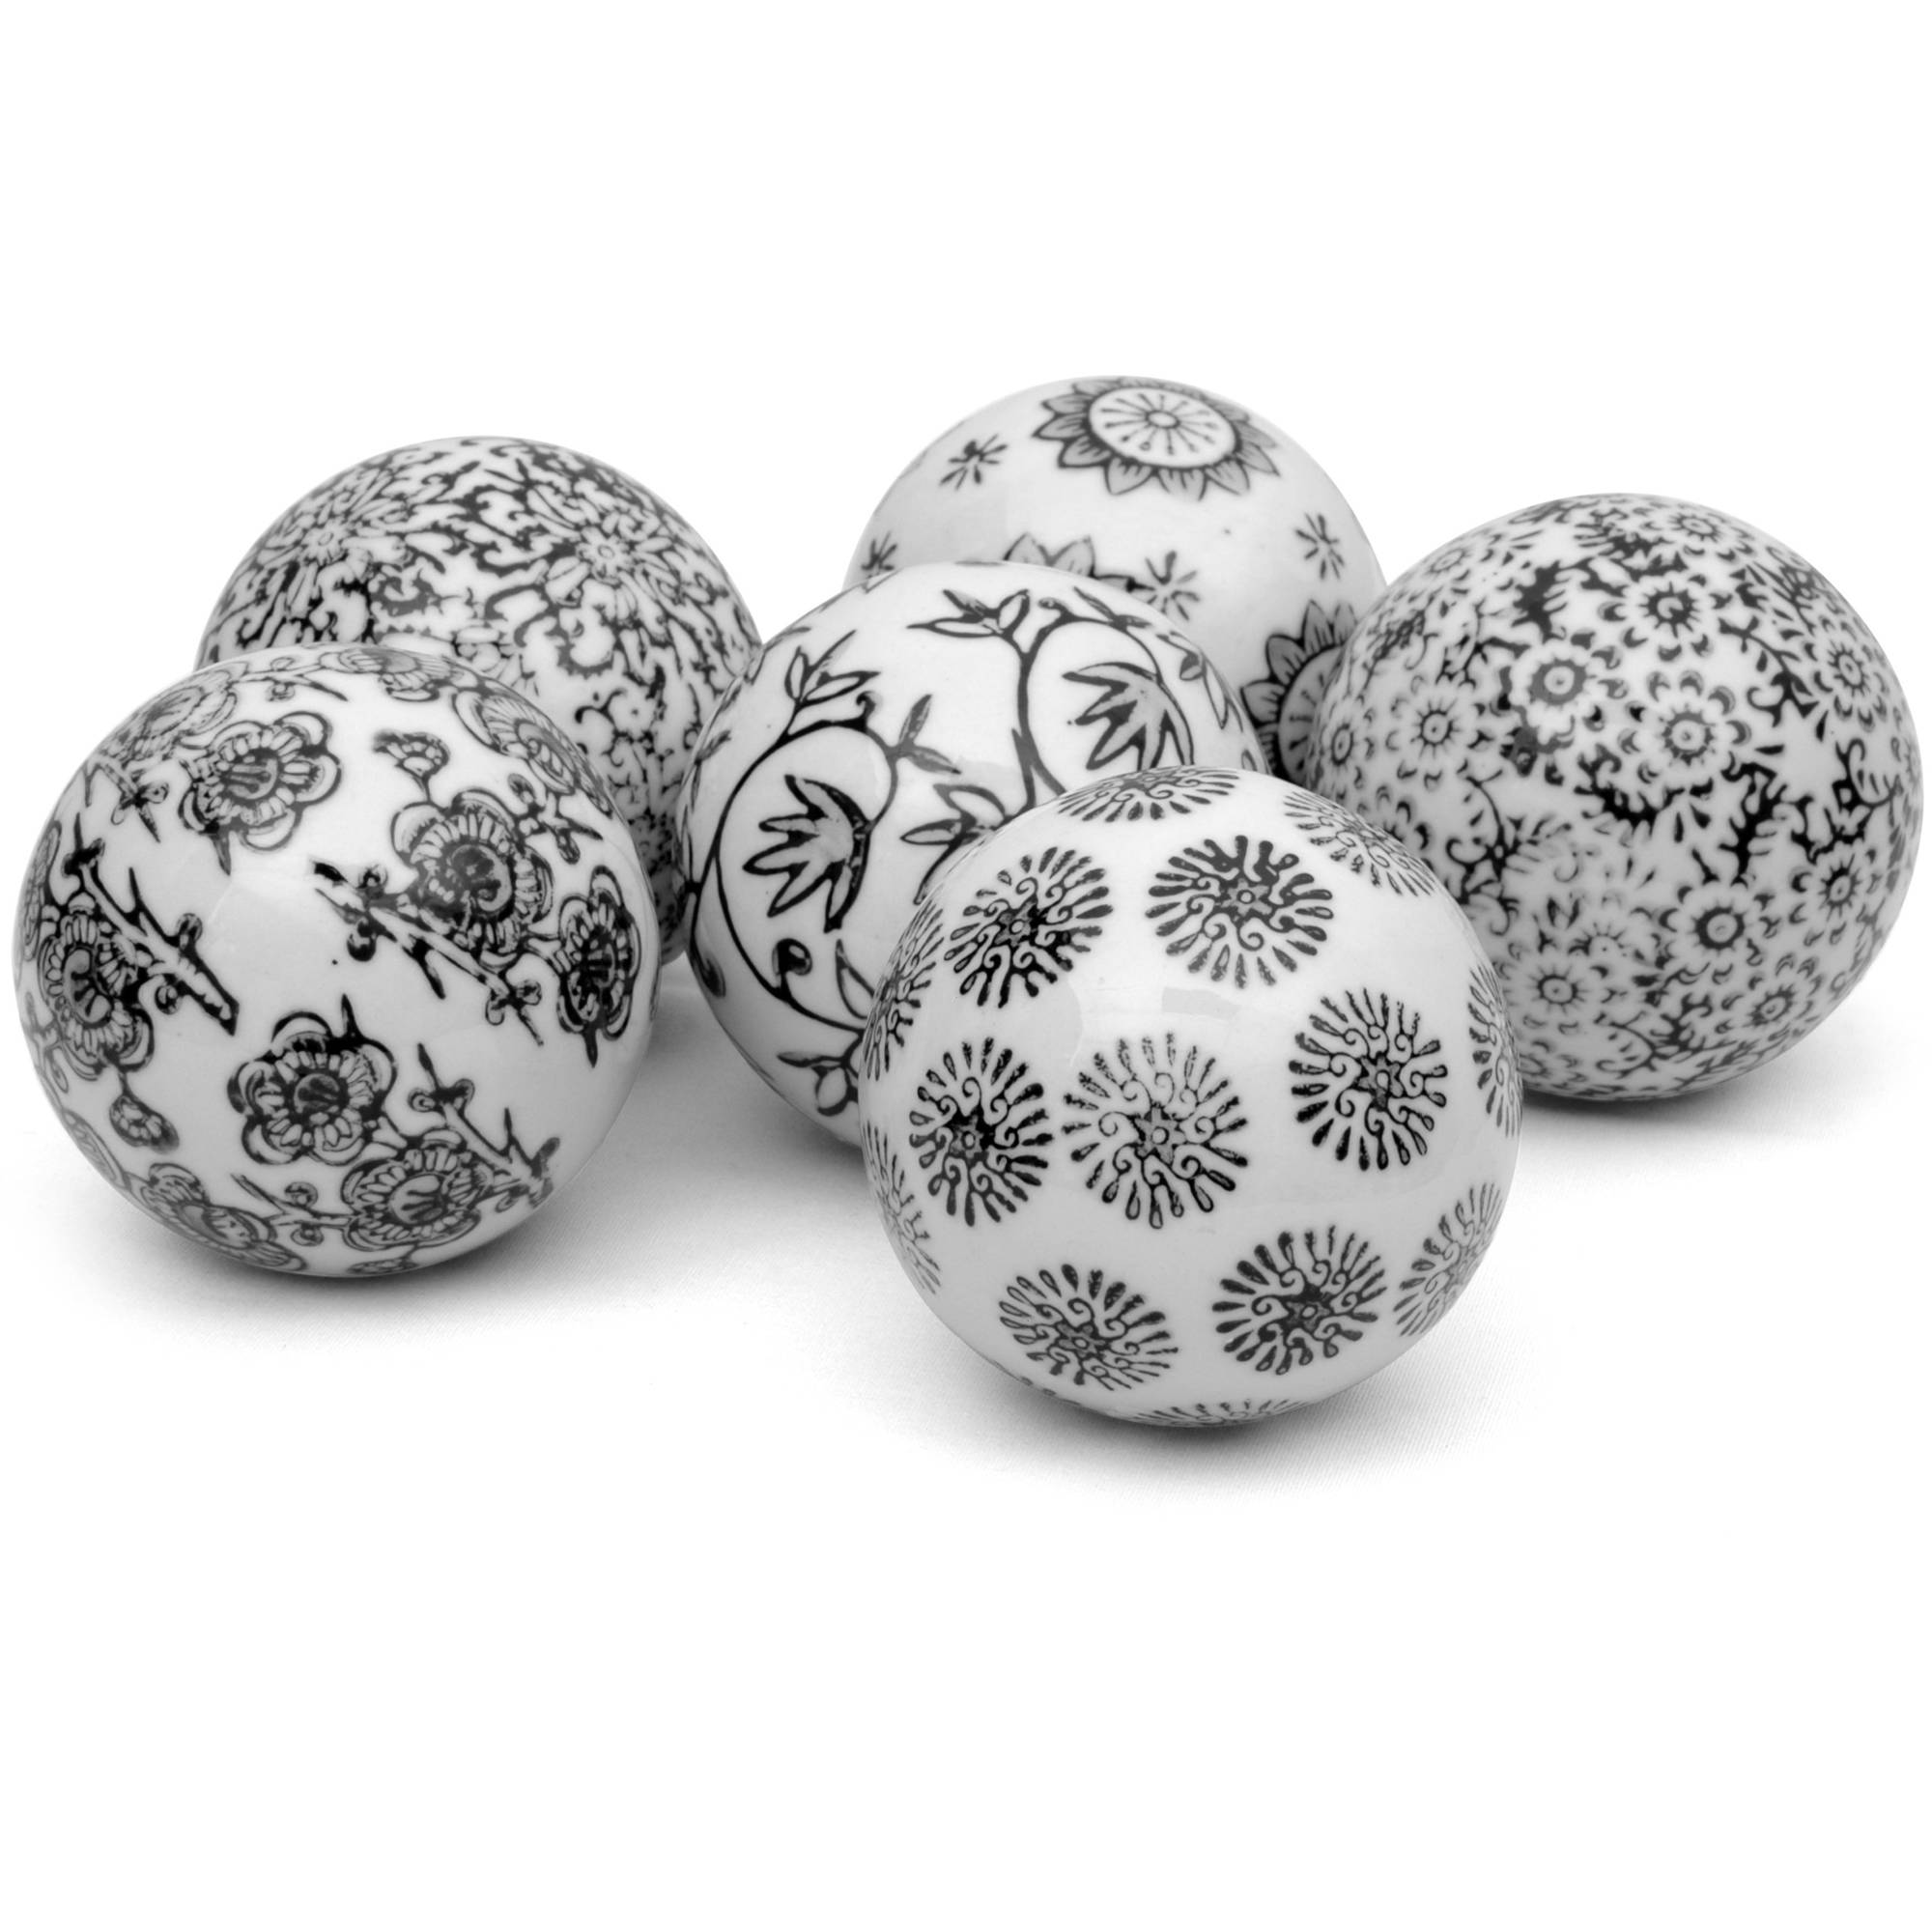 "3"" Black & White Decorative Porcelain Ball Set"